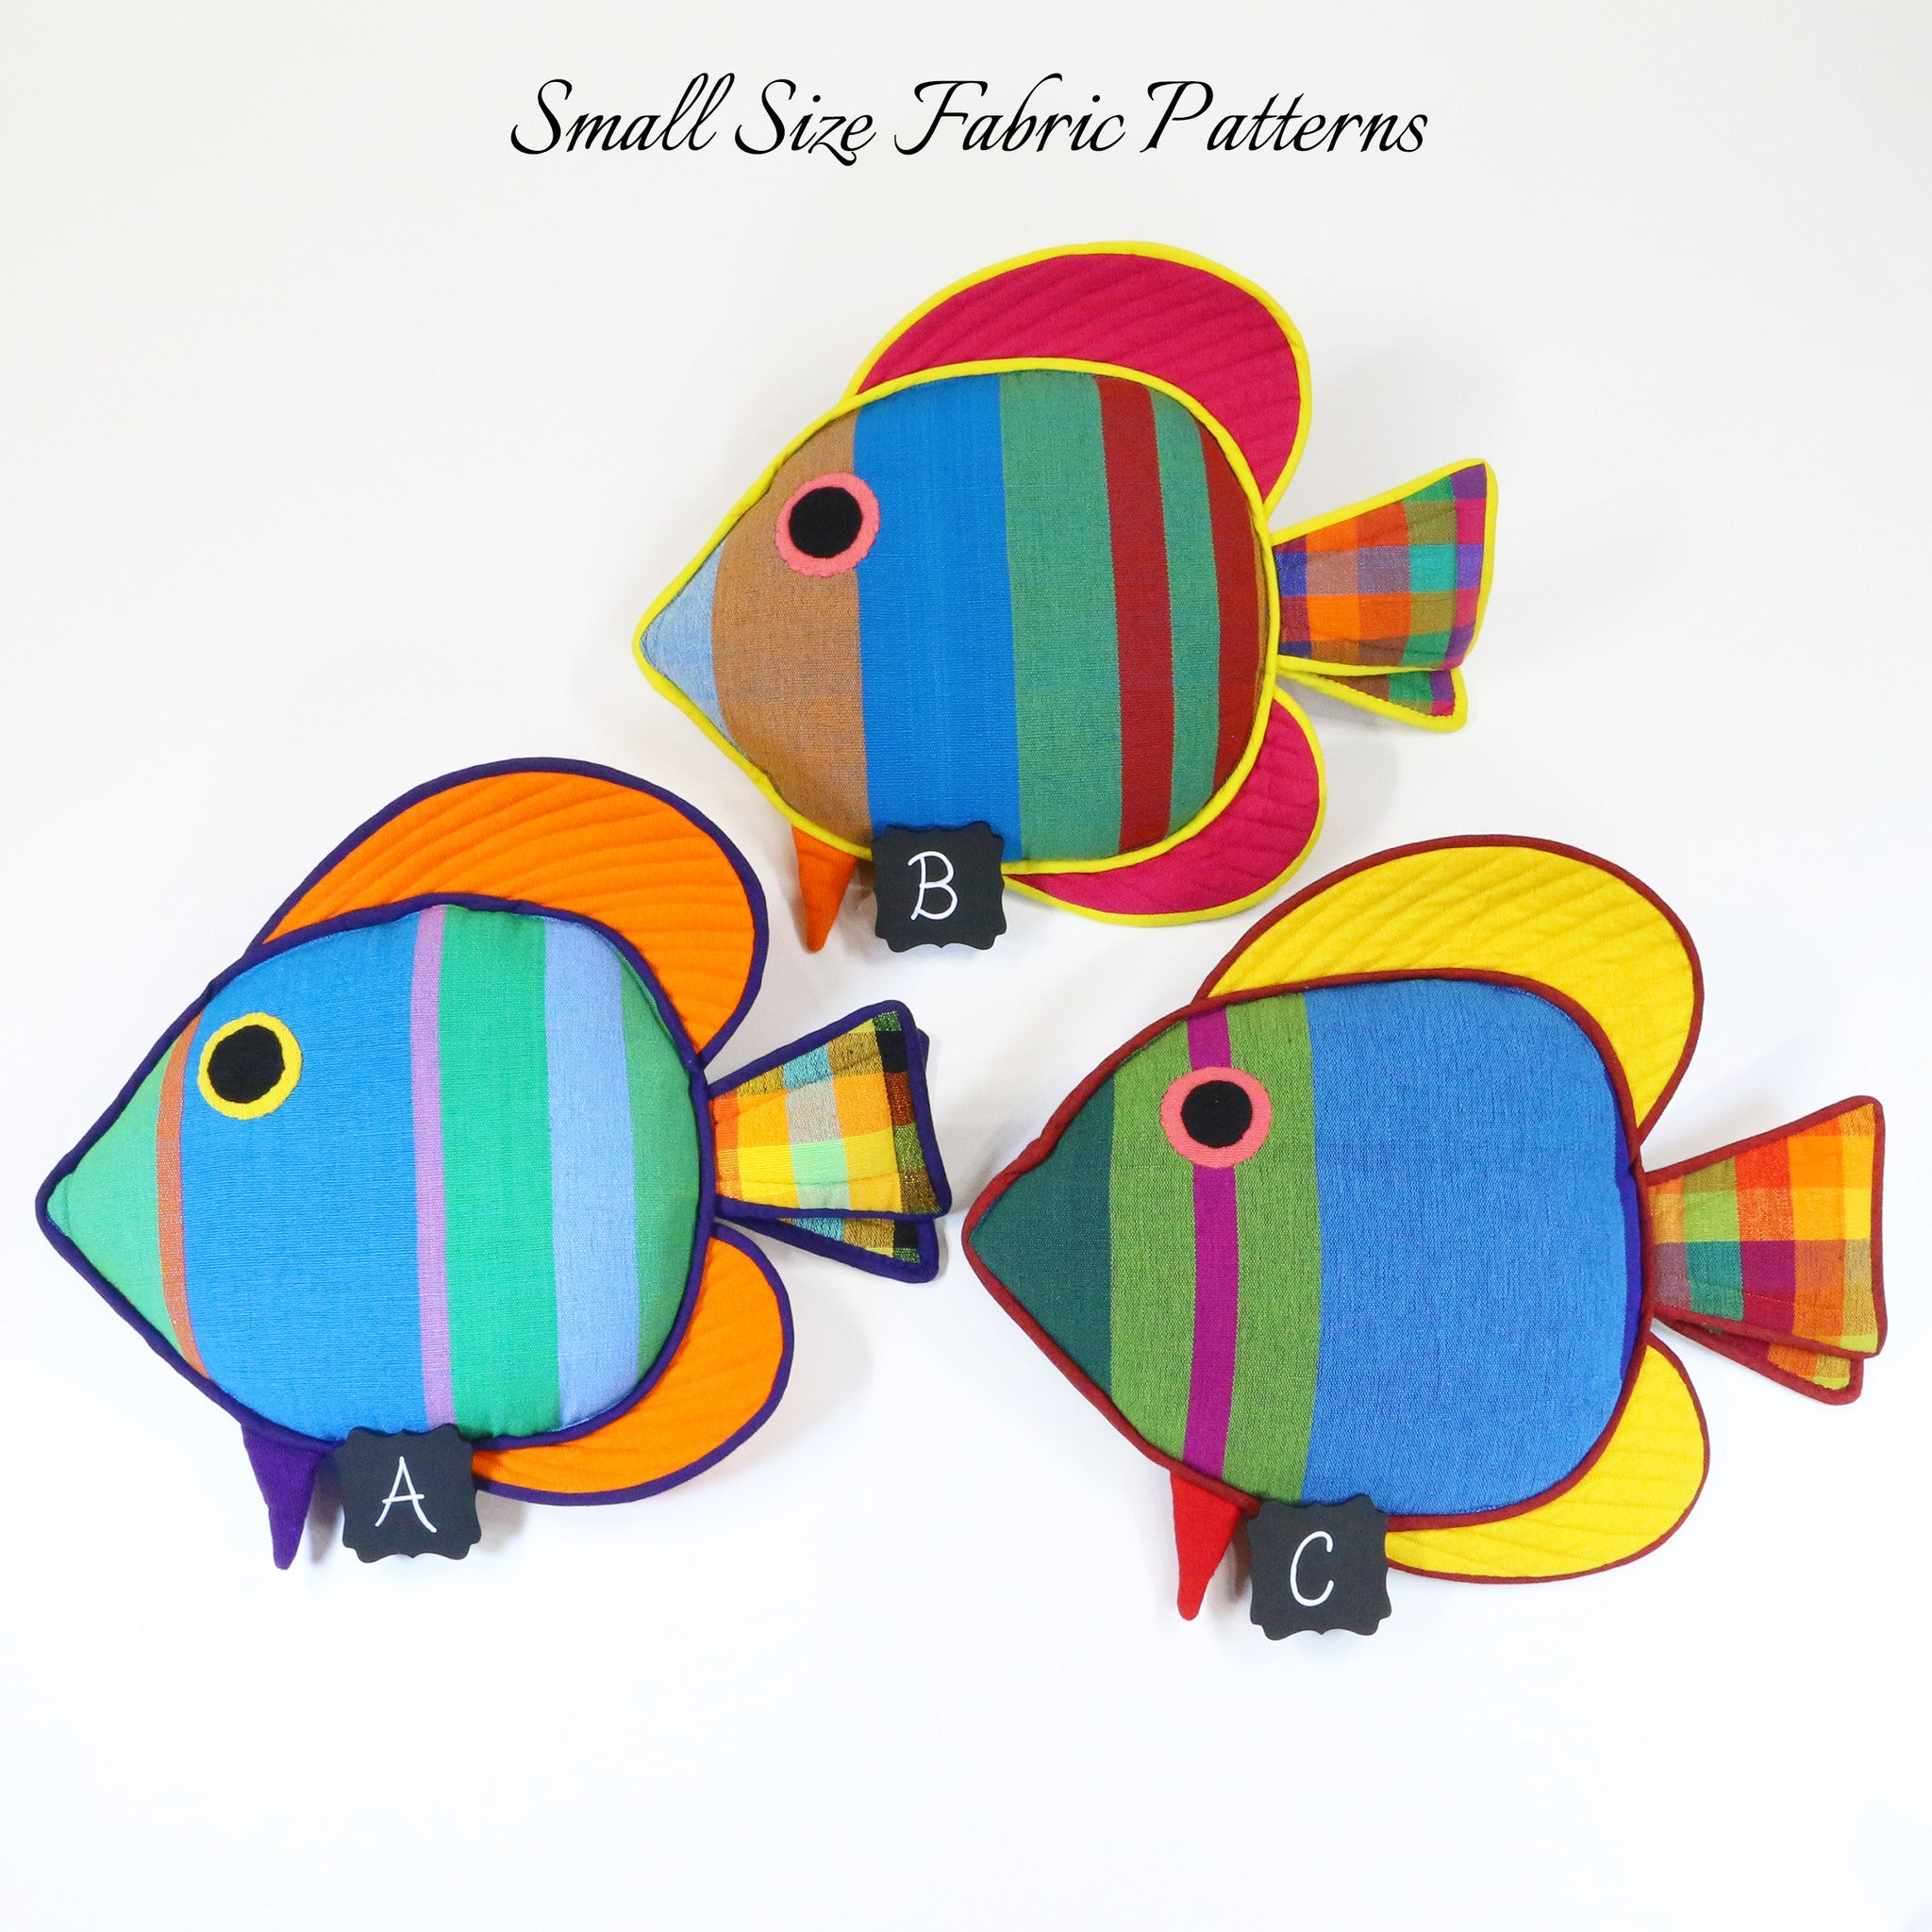 Cooper, the Sail Fin Fish – all small size fabric patterns shown